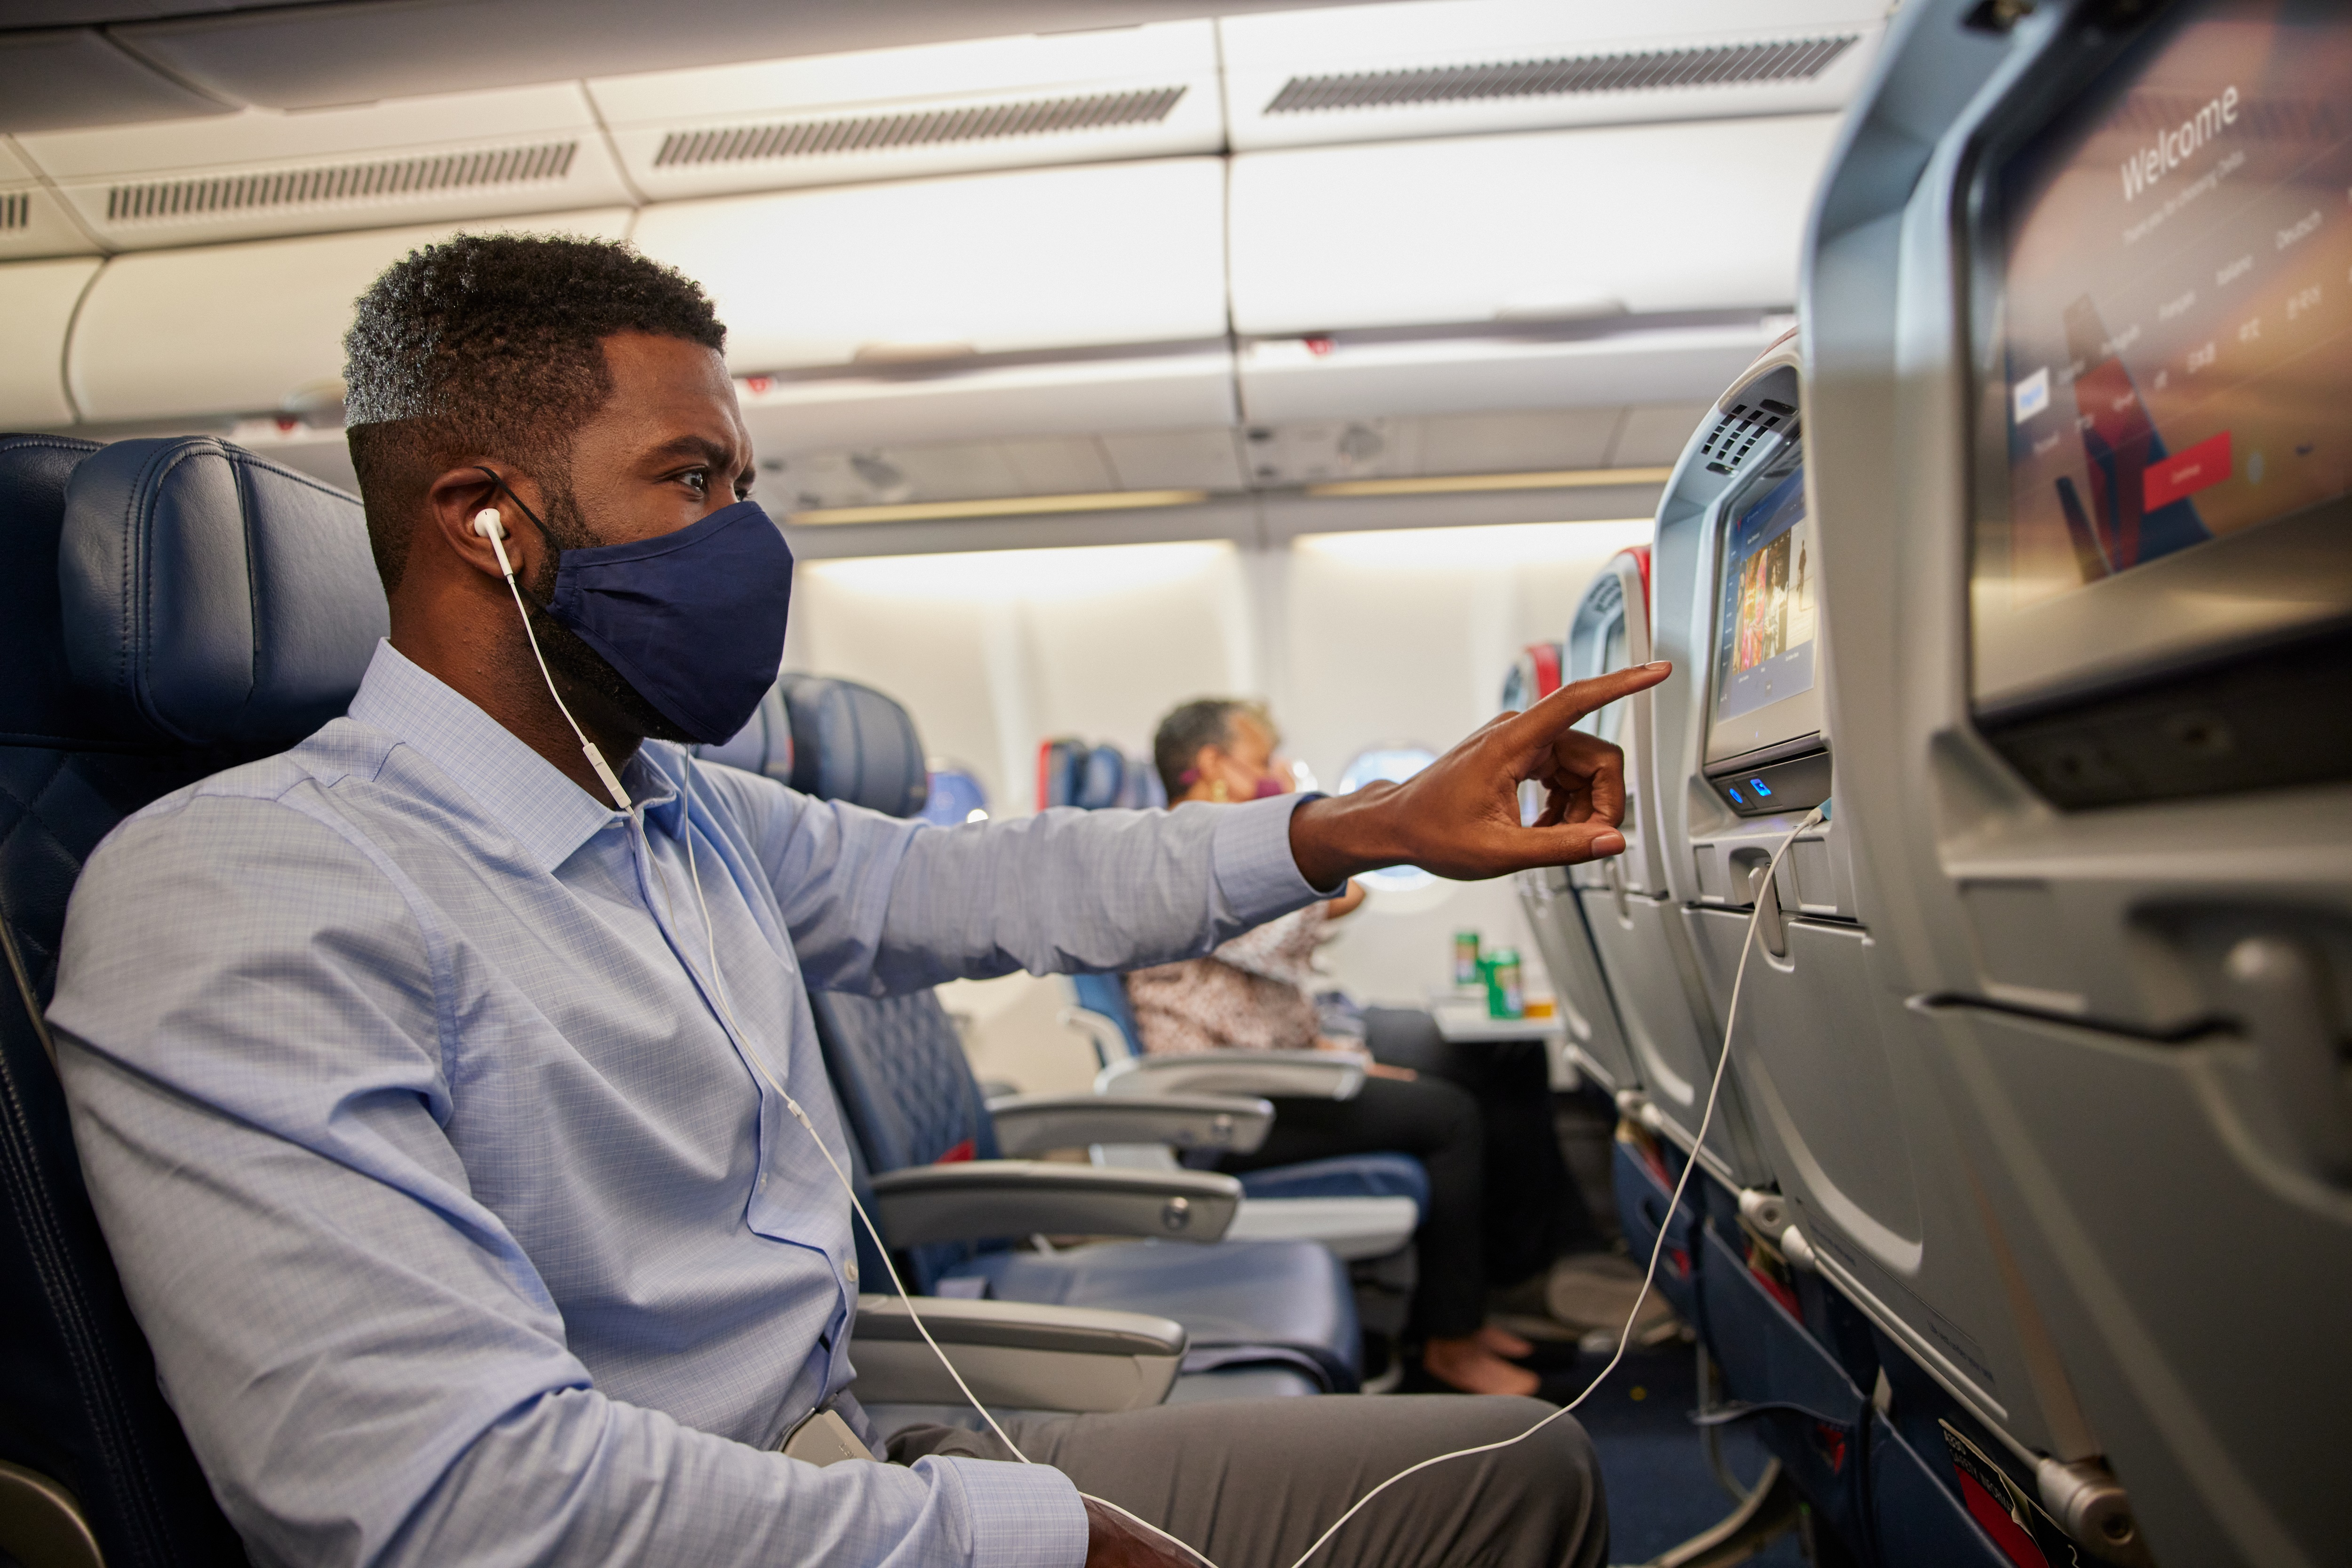 Customer on aircraft with mask, IFE